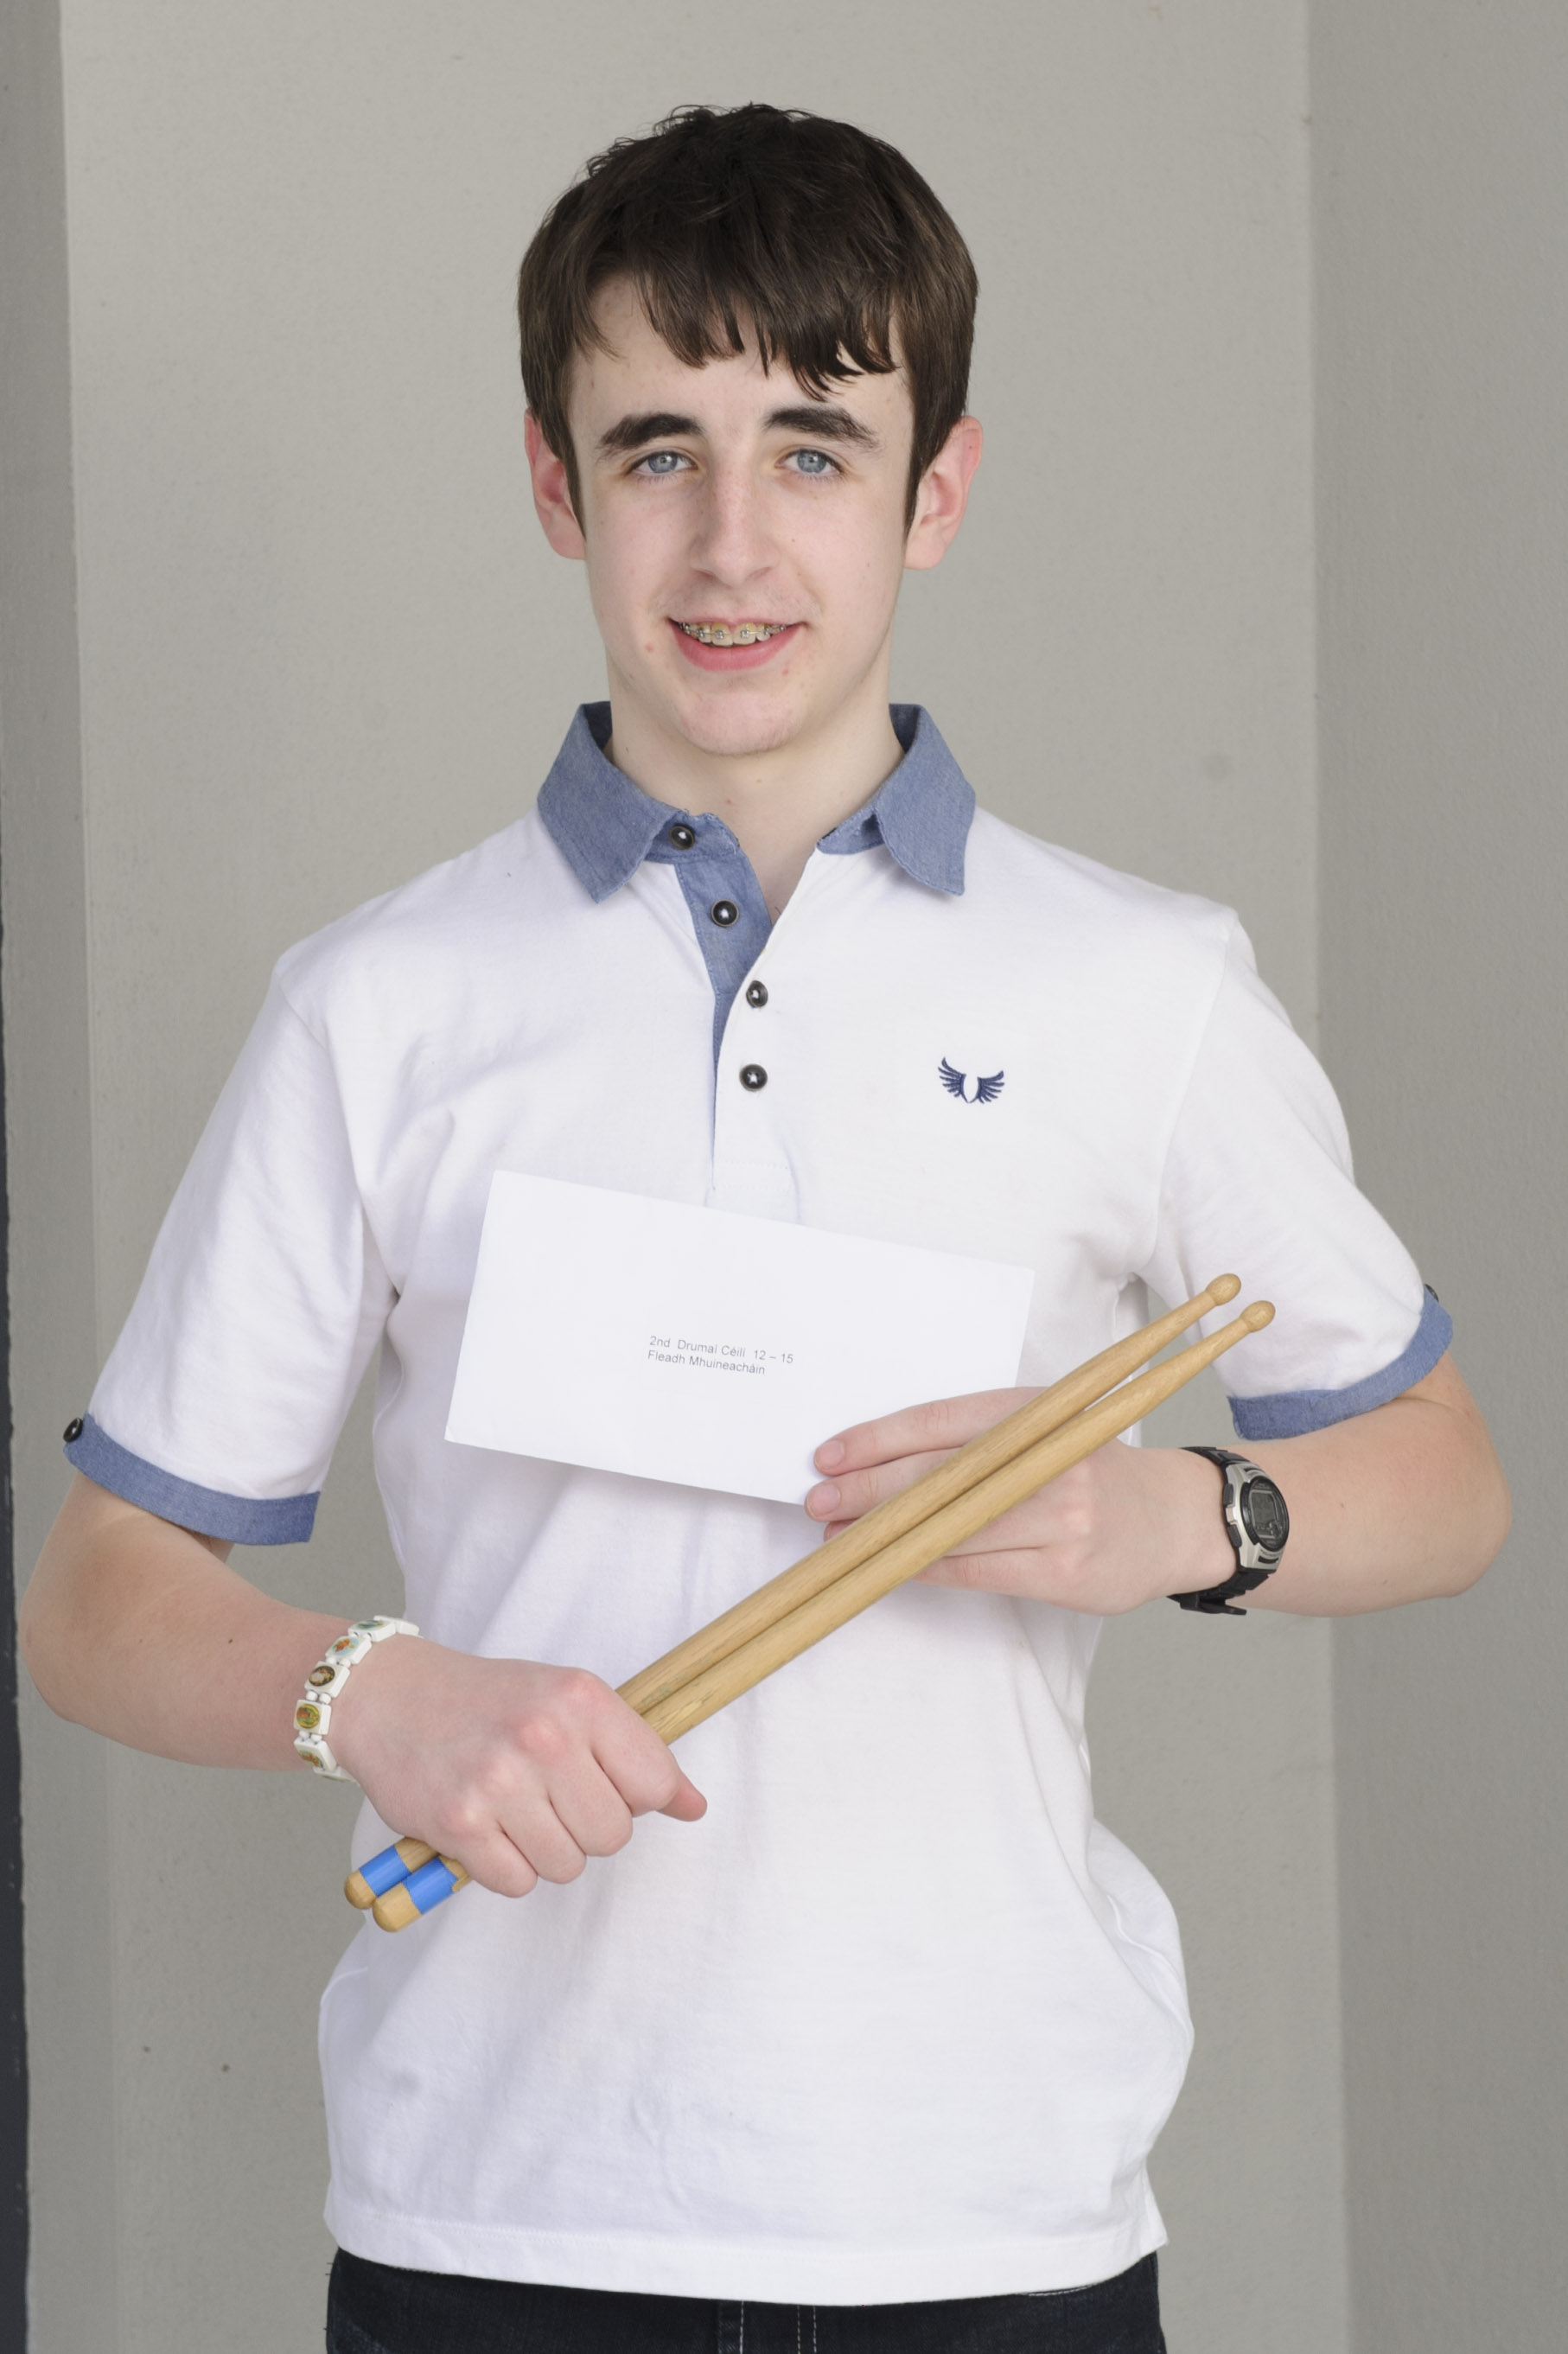 Conor Lappin, Éamonn Ó Muiri CCE, who was the runner-up in the U-18 Céiléi Band Drums. ©Rory Geary/The Northern Standard